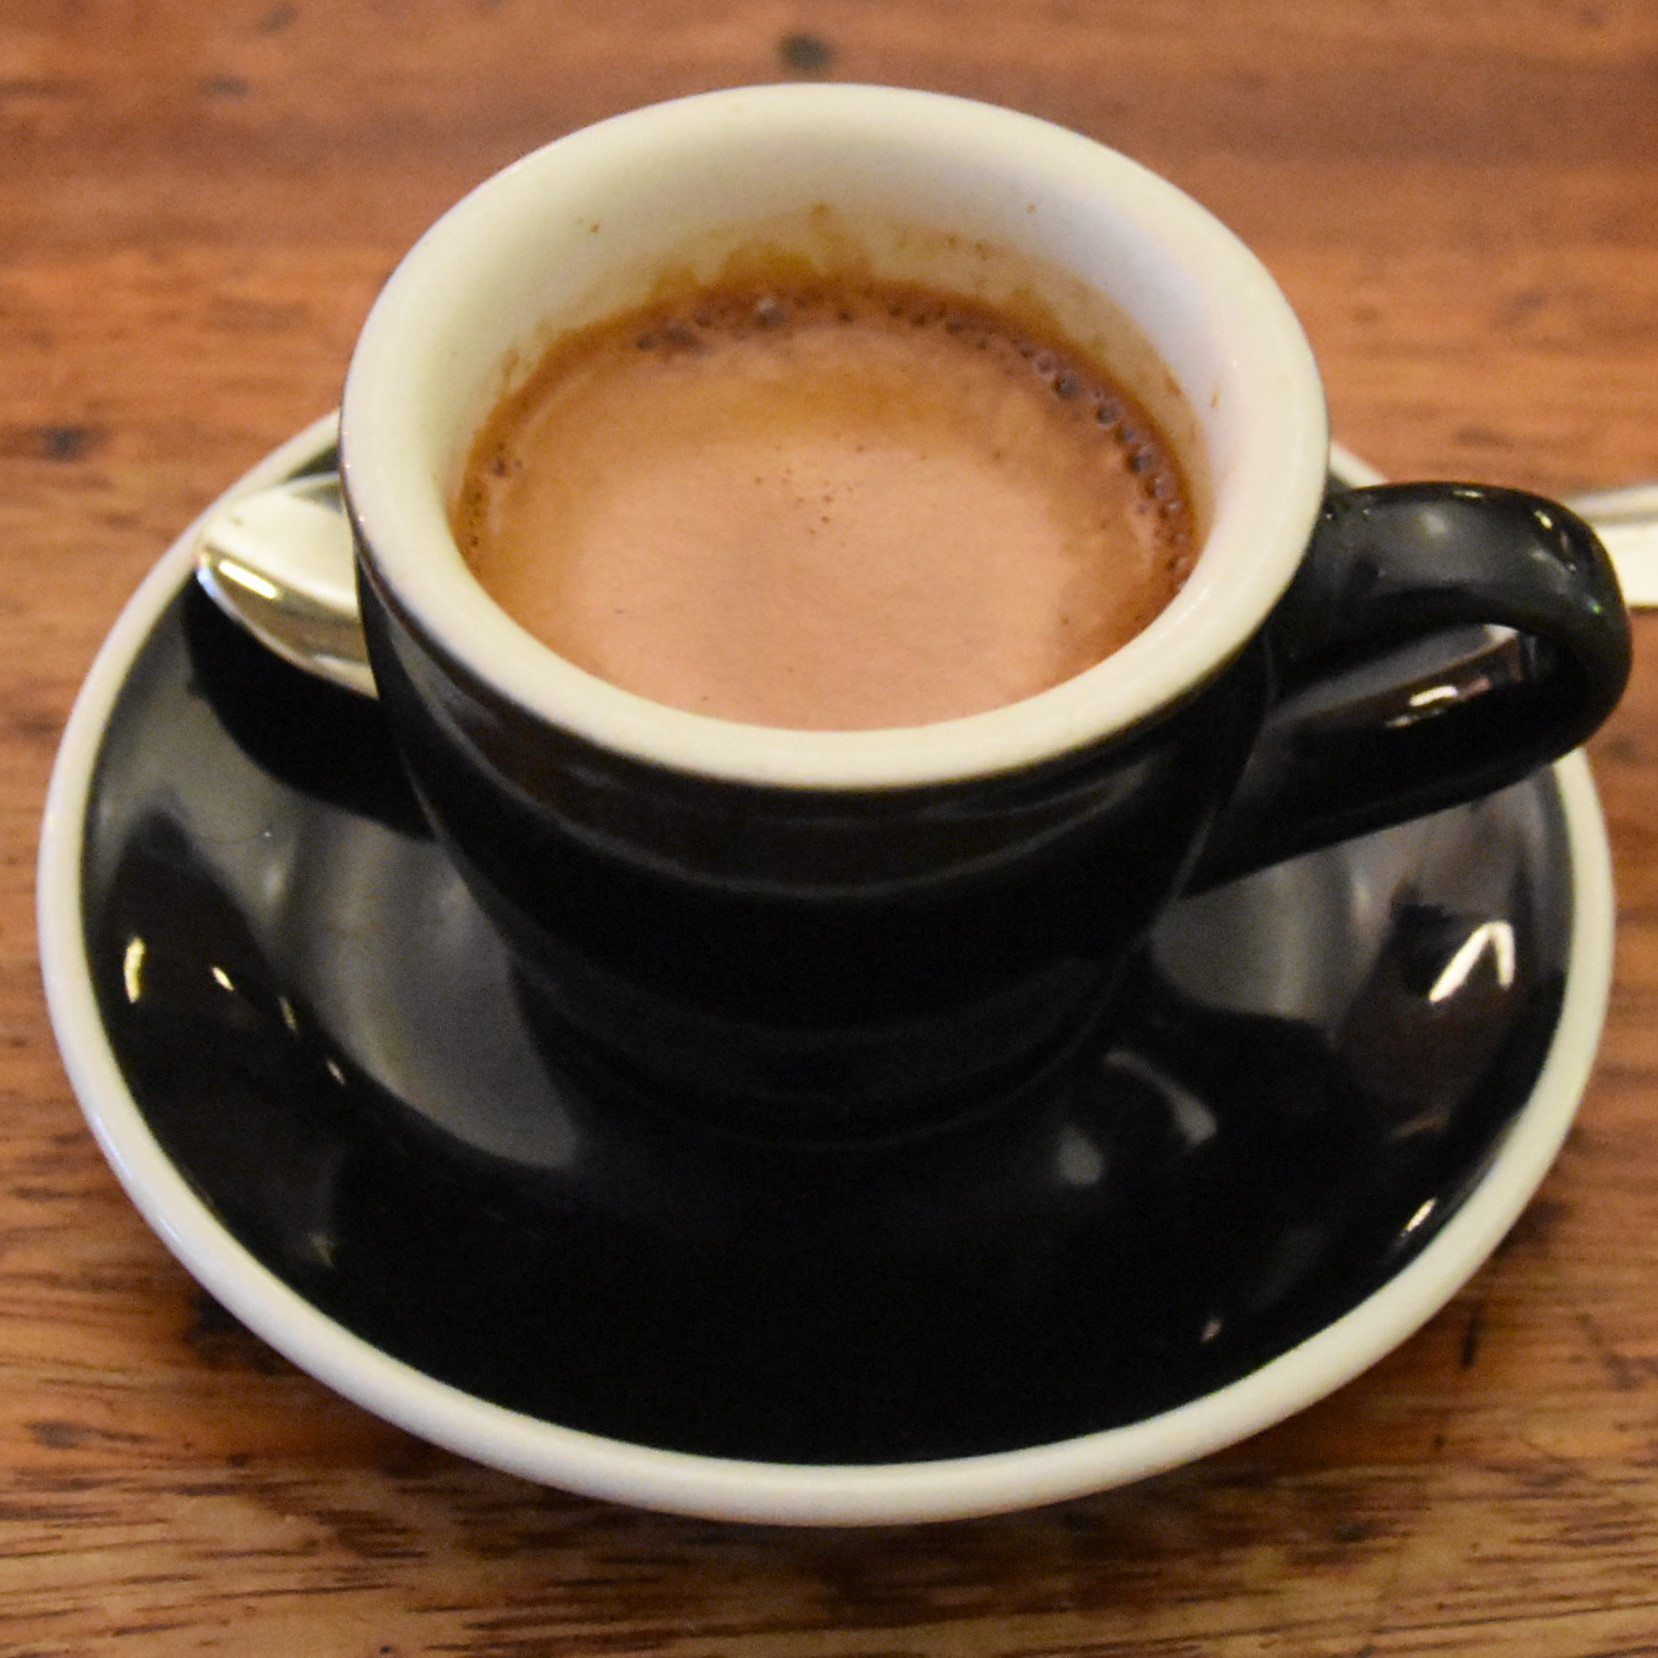 My espresso, made with Square Mile's Red Brick blend, and served in a classic black cup at Kaffeine on Great Titchfield Street.